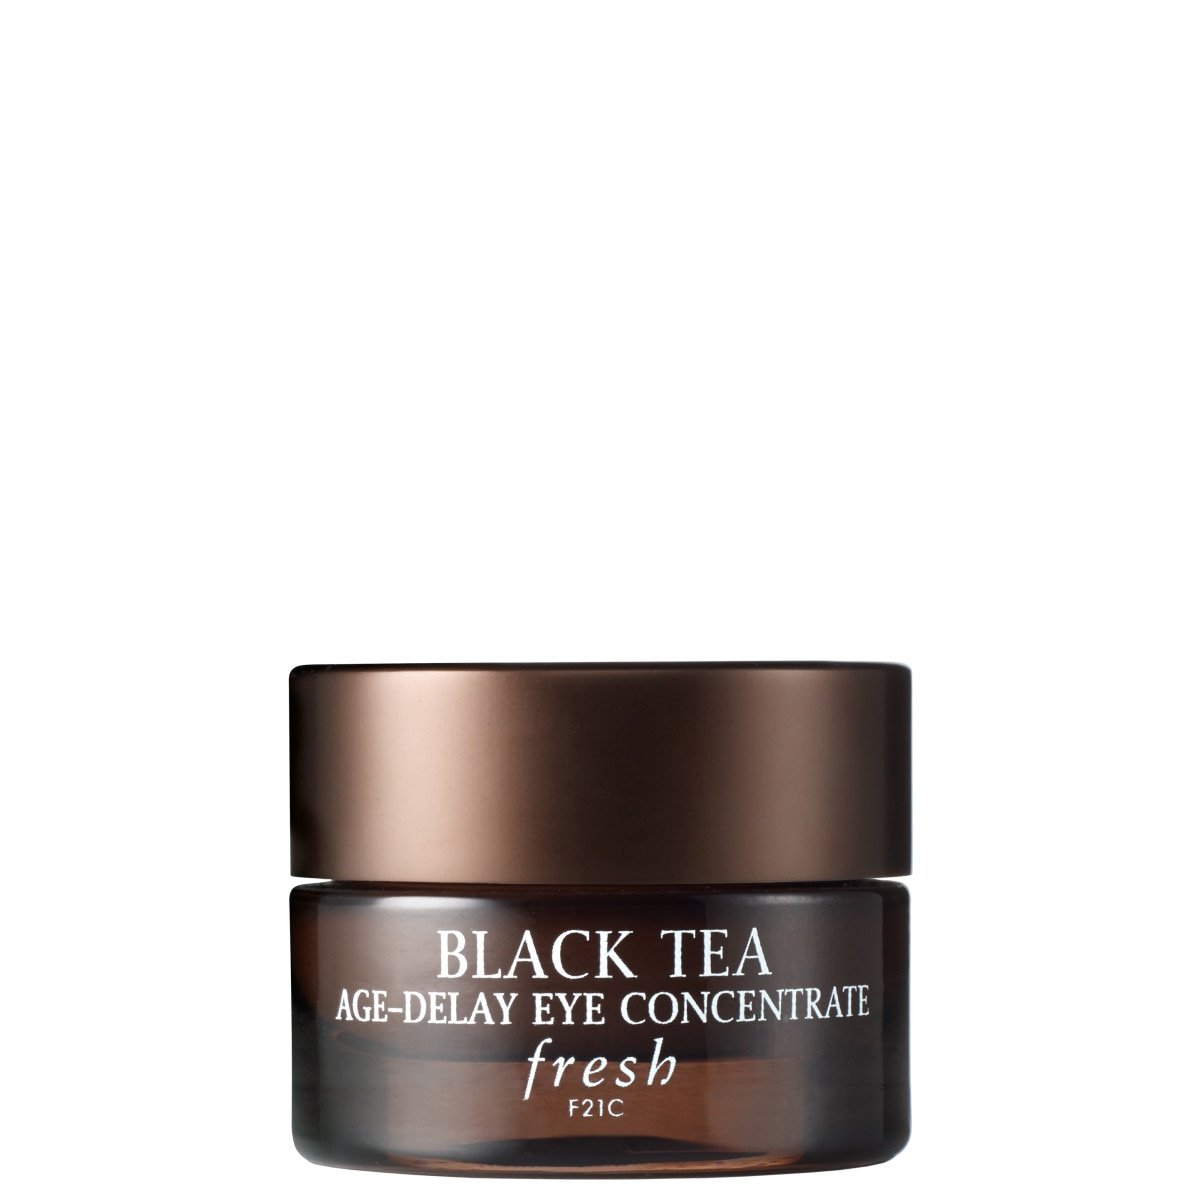 BLACK TEA FIRMING AND DE-PUFFING EYE CREAM 15 ML